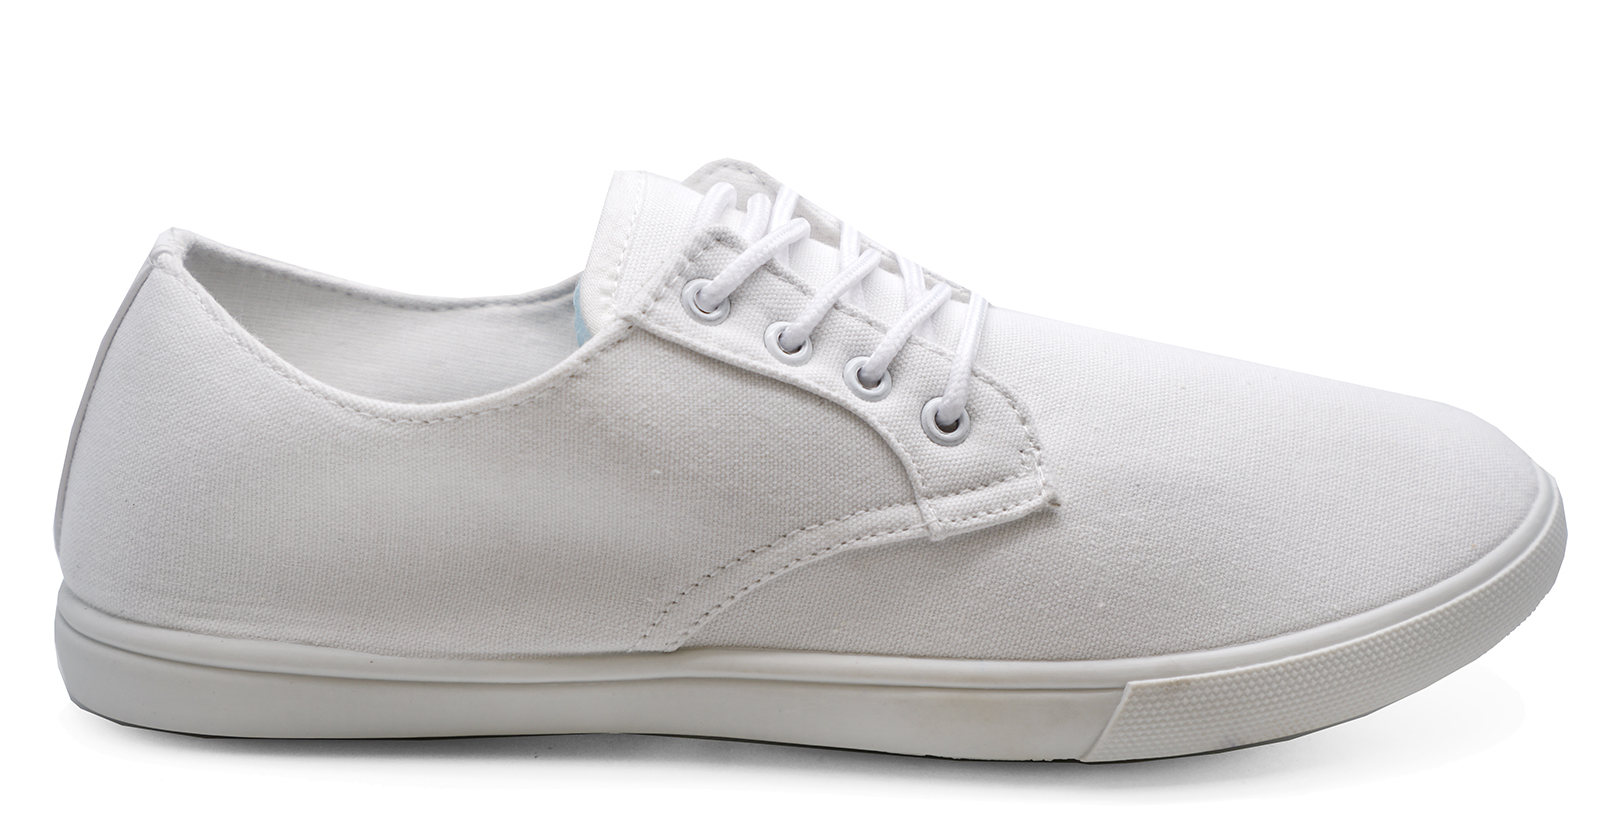 MENS-LACE-UP-WHITE-CANVAS-FLAT-TRAINER-PLIMSOLL-PUMPS-CASUAL-SHOES-SIZES-6-12 thumbnail 21